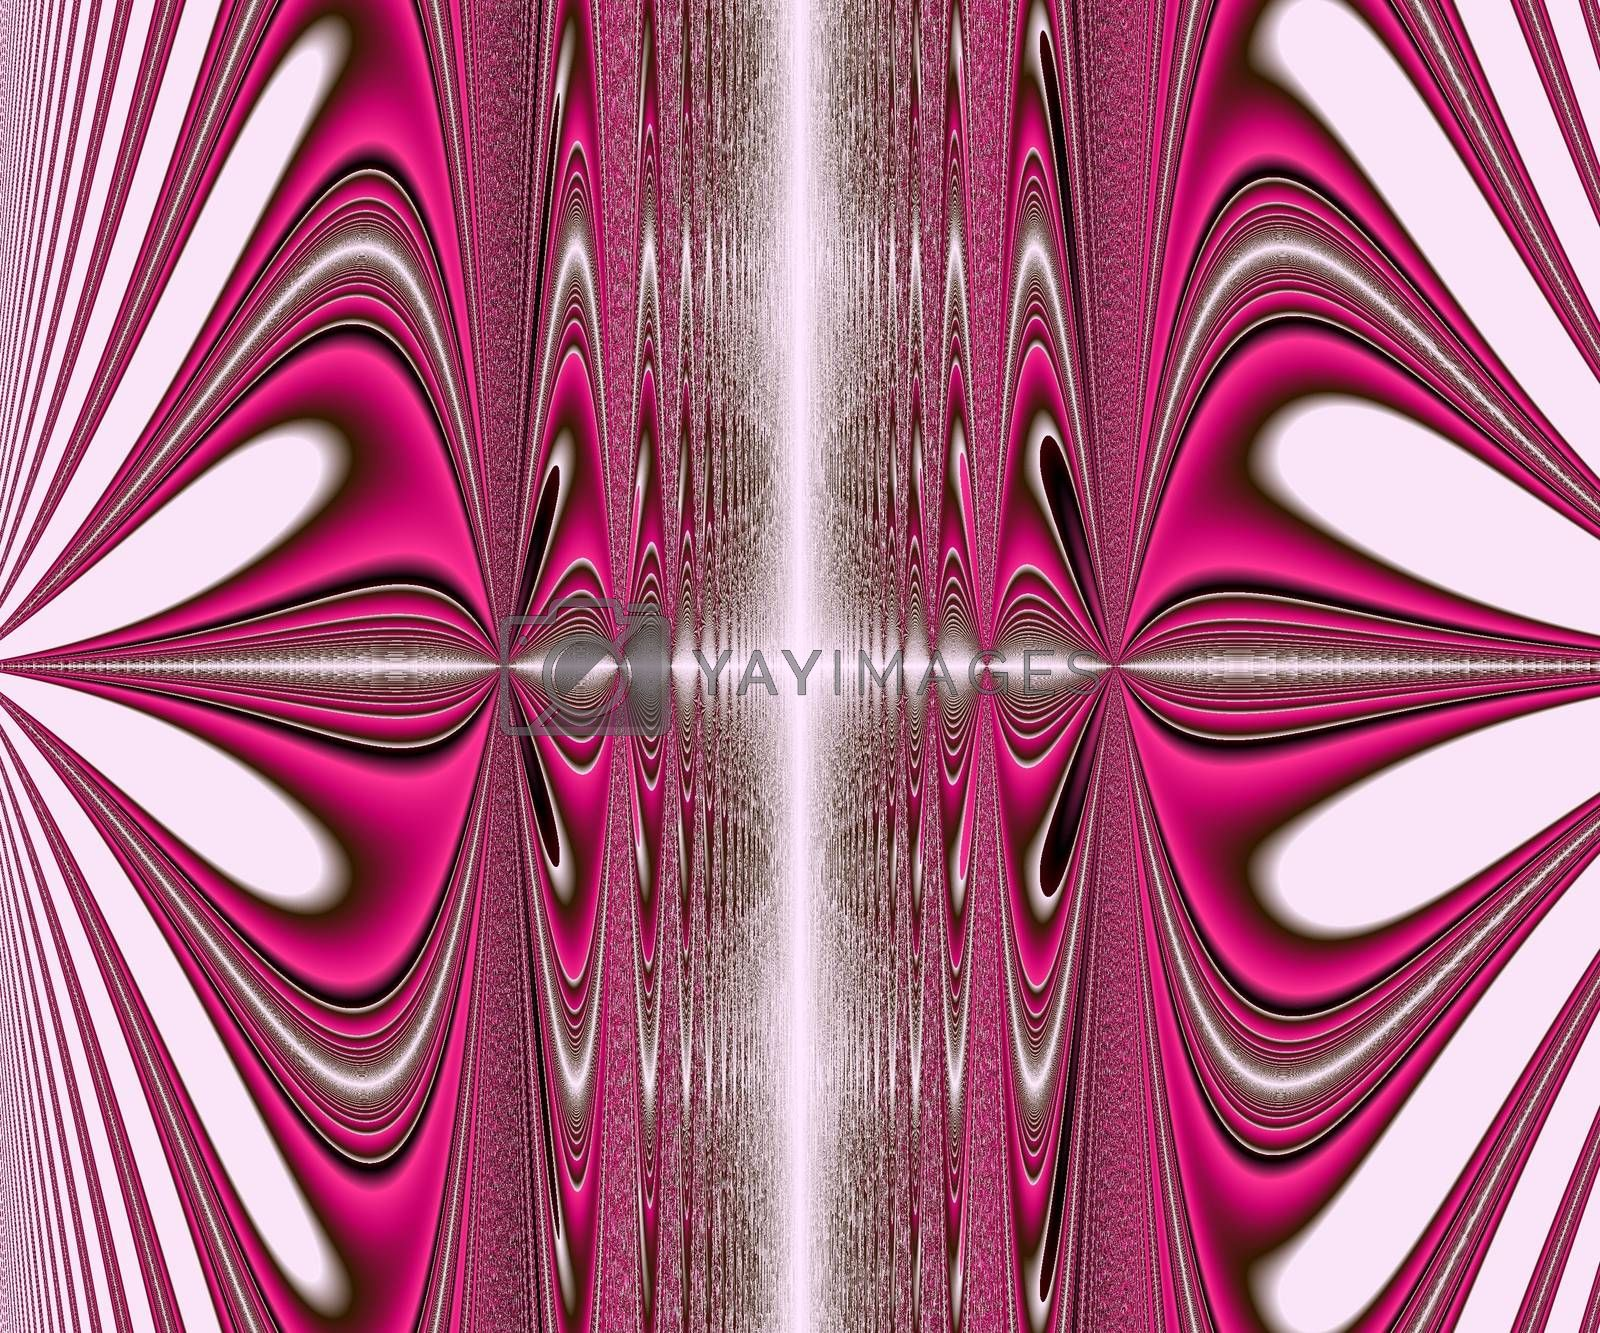 Computer generated abstract colorful fractal artwork for creative design and entertainment